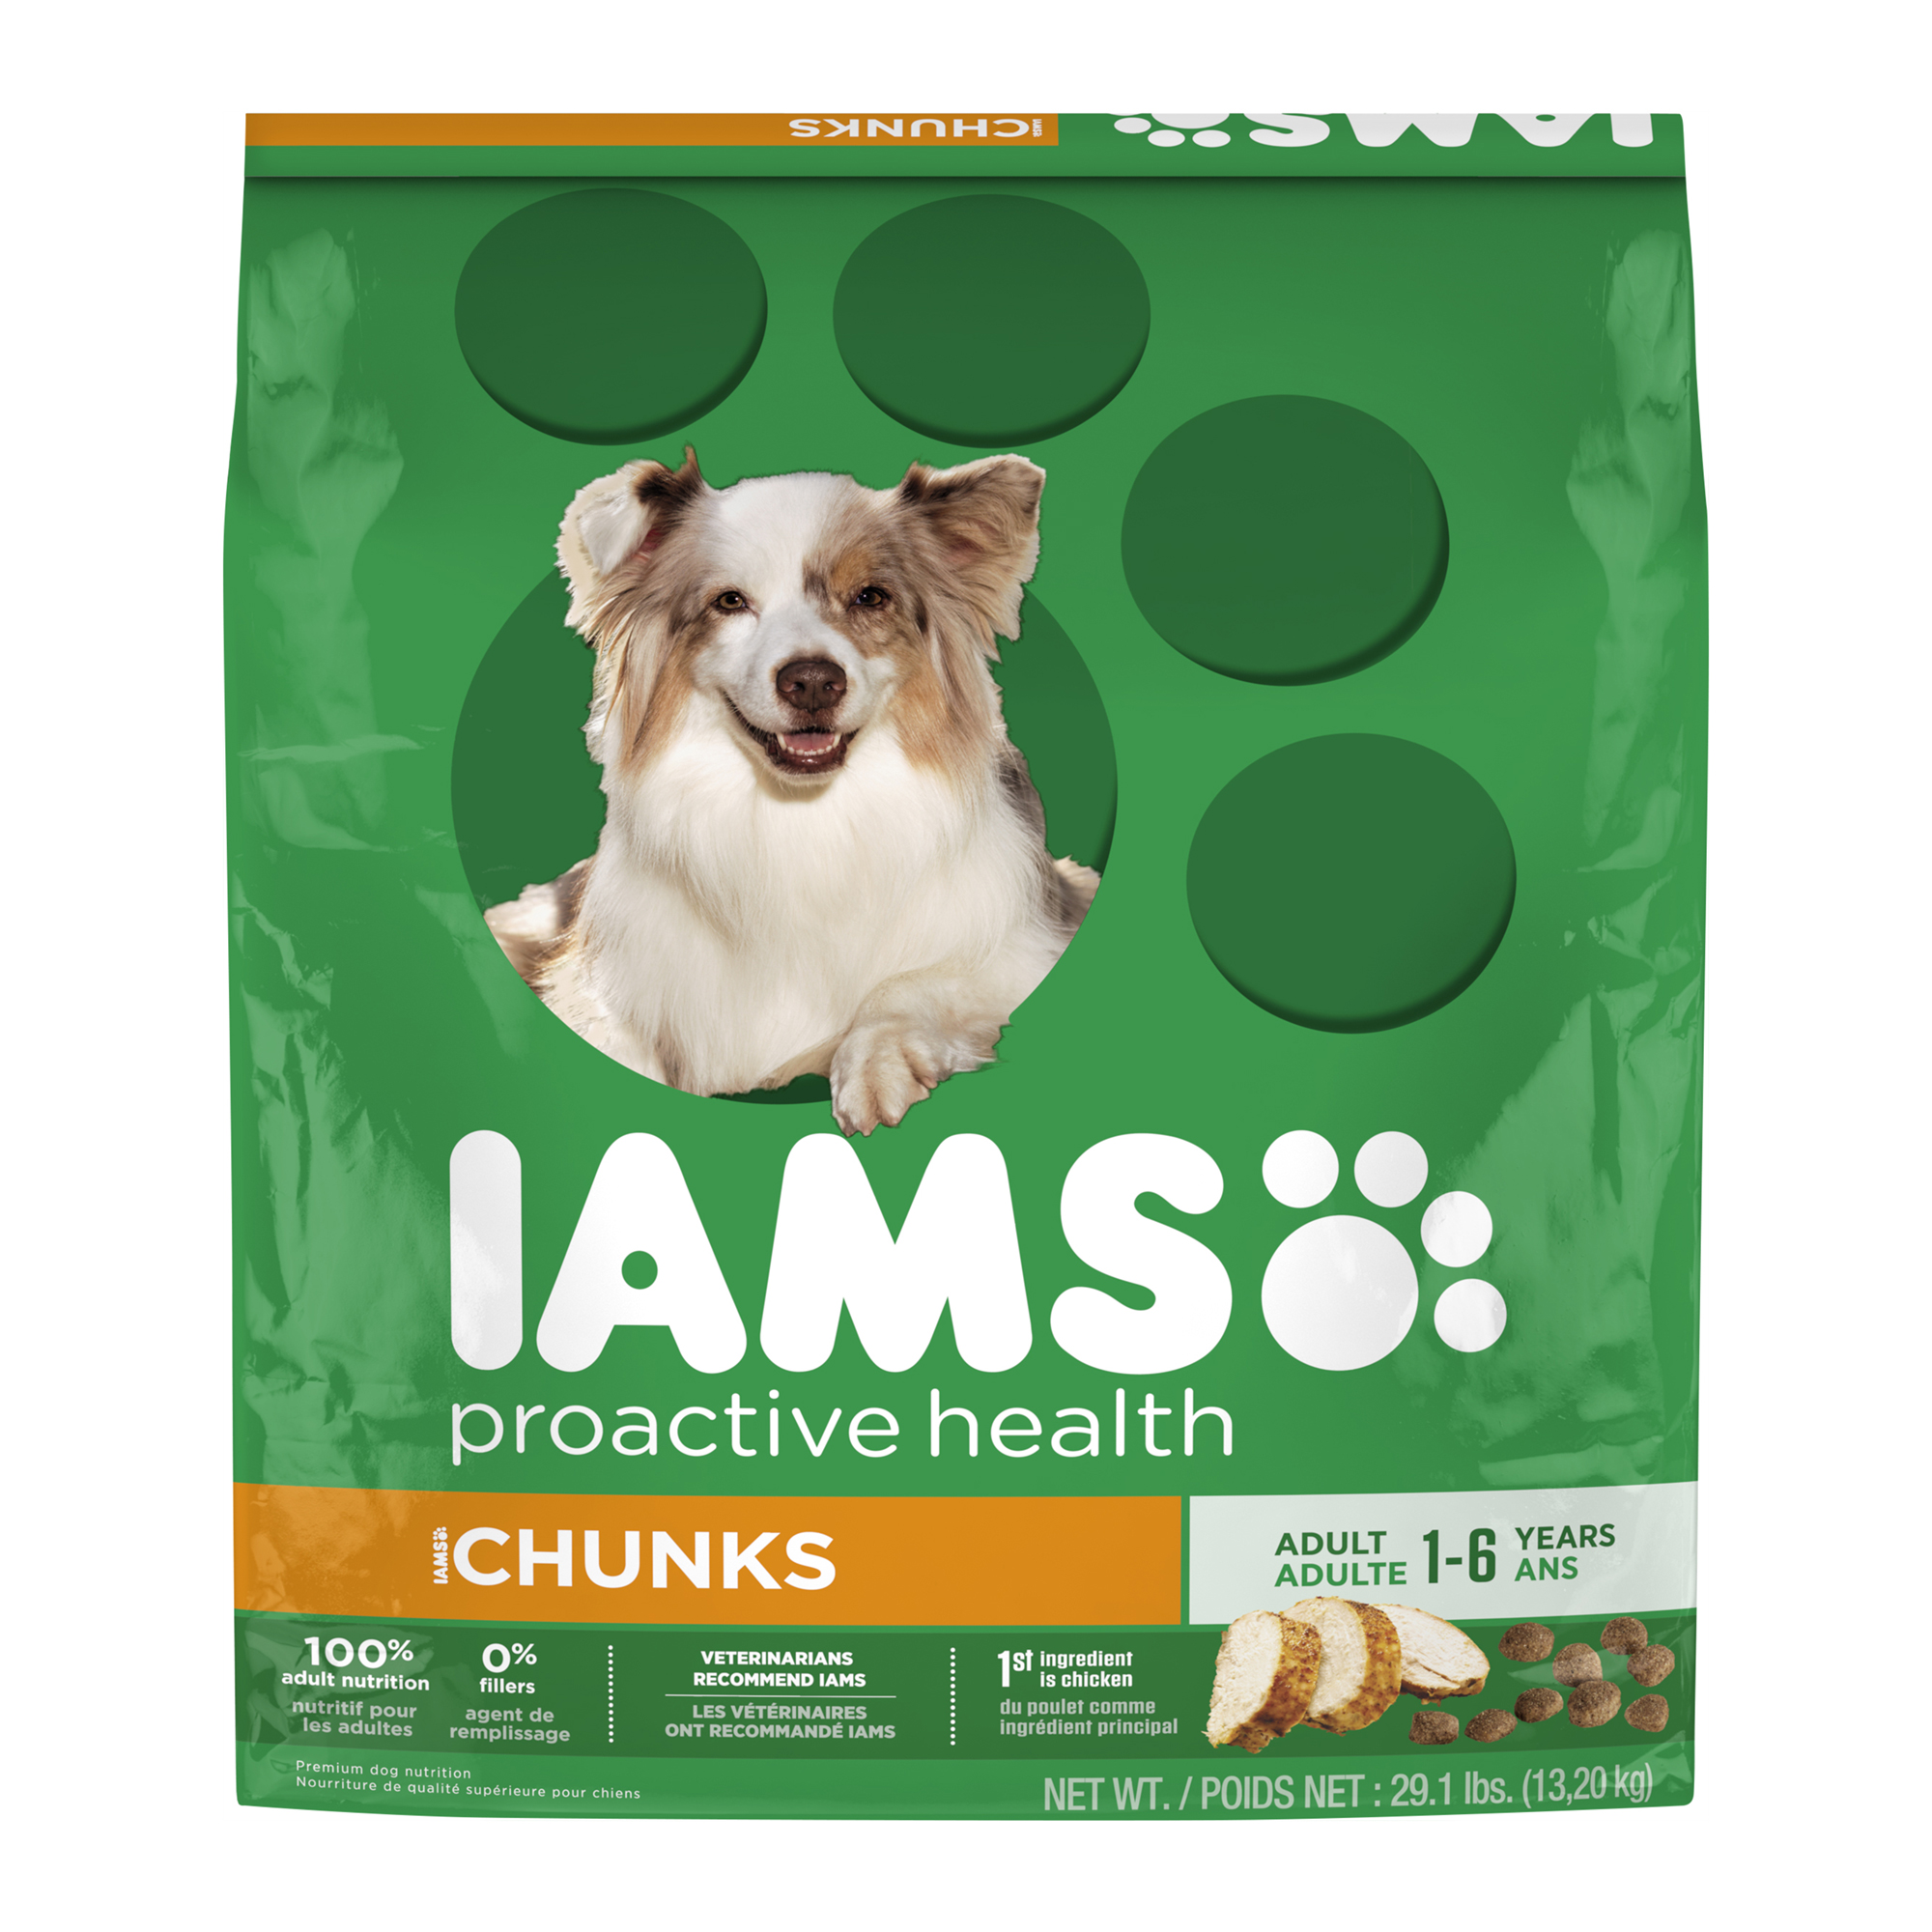 IAMS PROACTIVE HEALTH Adult Chunks Dry Dog Food 29.1 Pounds